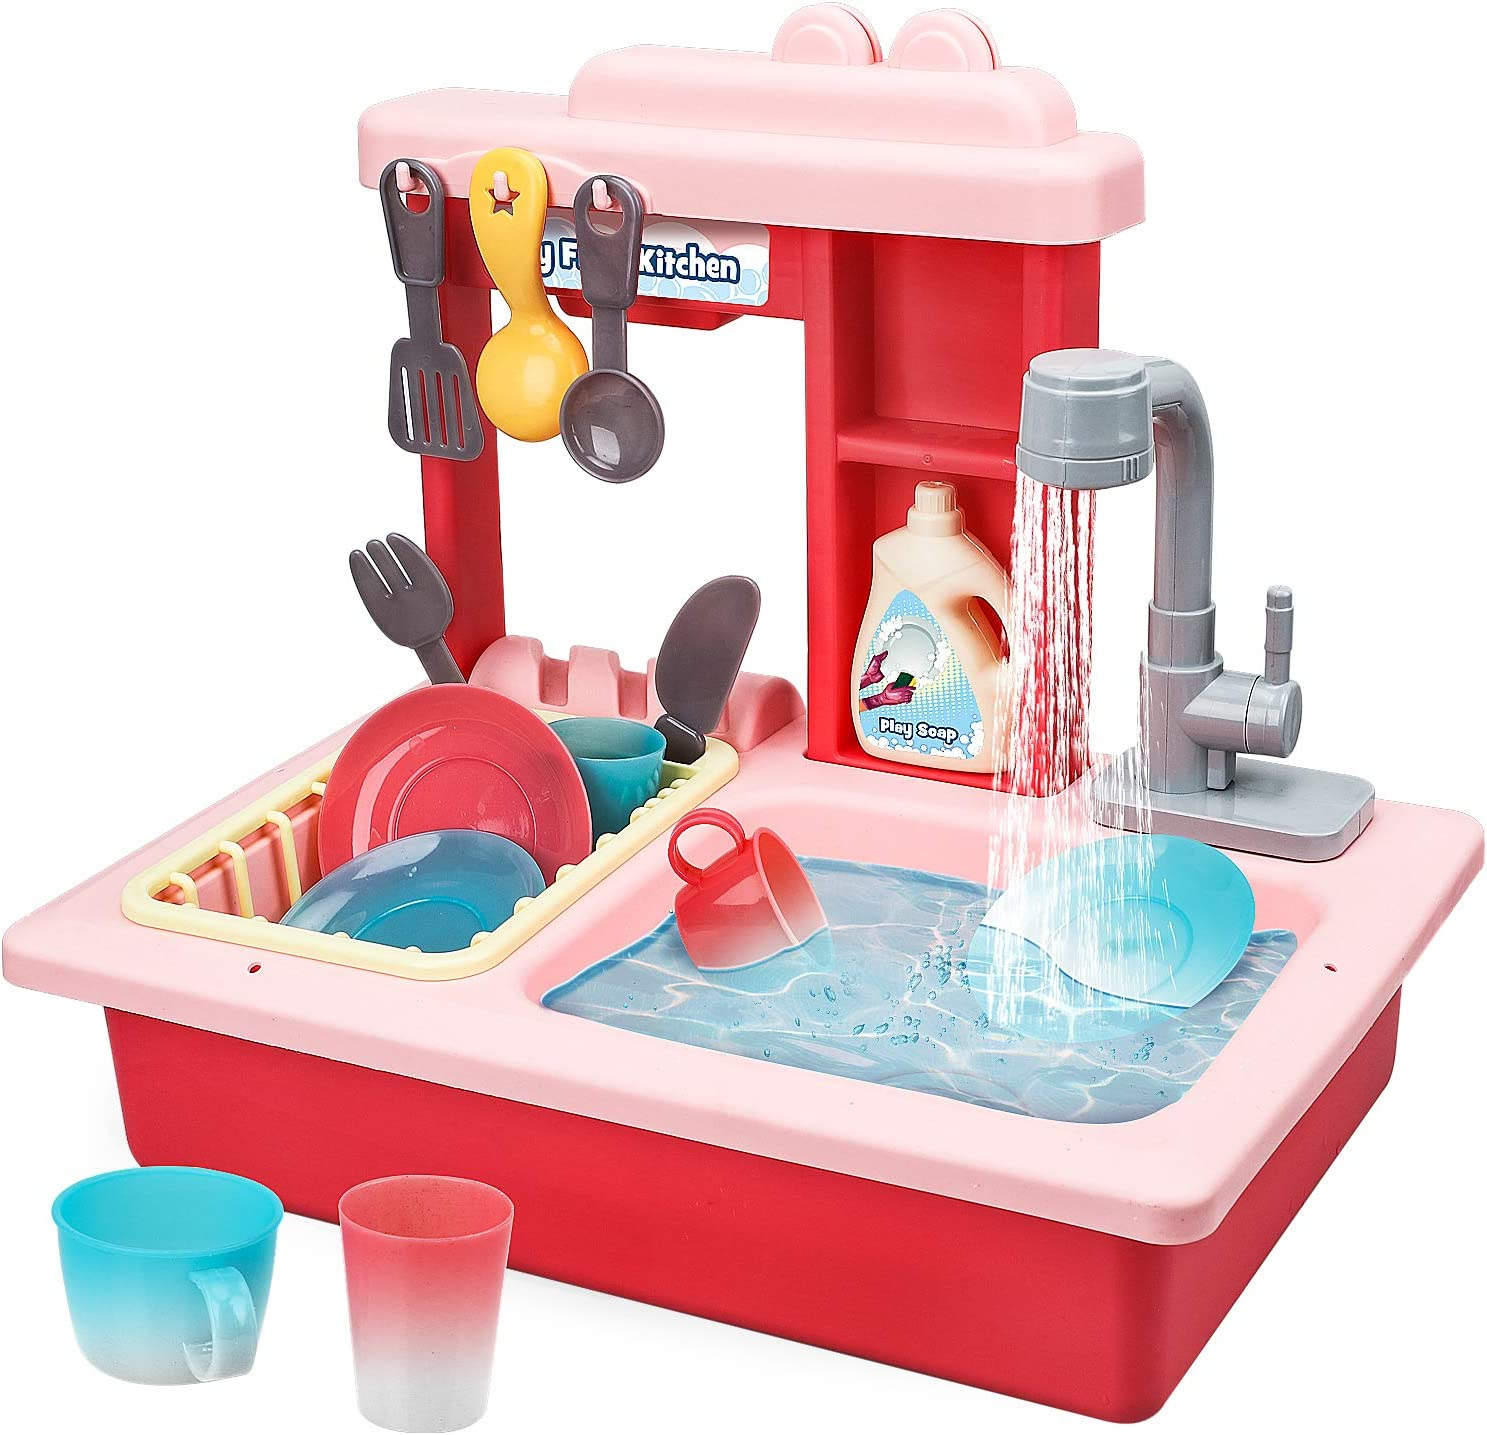 STEAM Life Kitchen Play Sink Toy with Color Changing Toy Dishes - Play Sink with Running Water - Pretend Play Kitchen Toys for Girls and Boys - Kitchen Toddler Sink Toy for Kids (Pink)